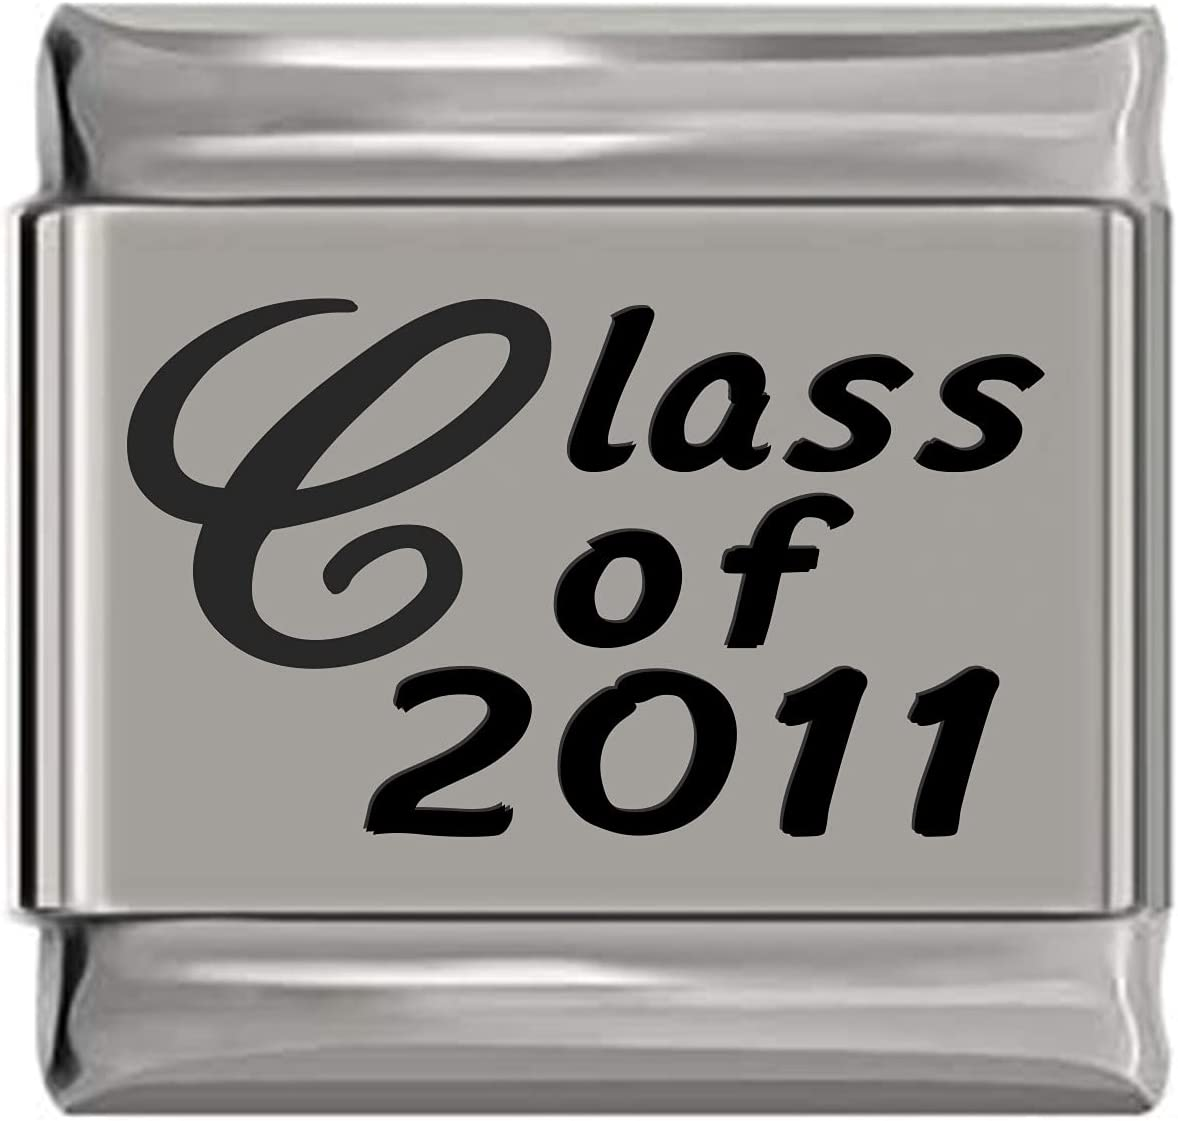 Class of 2011 Laser Directly Excellence managed store Engraved Italian Charm